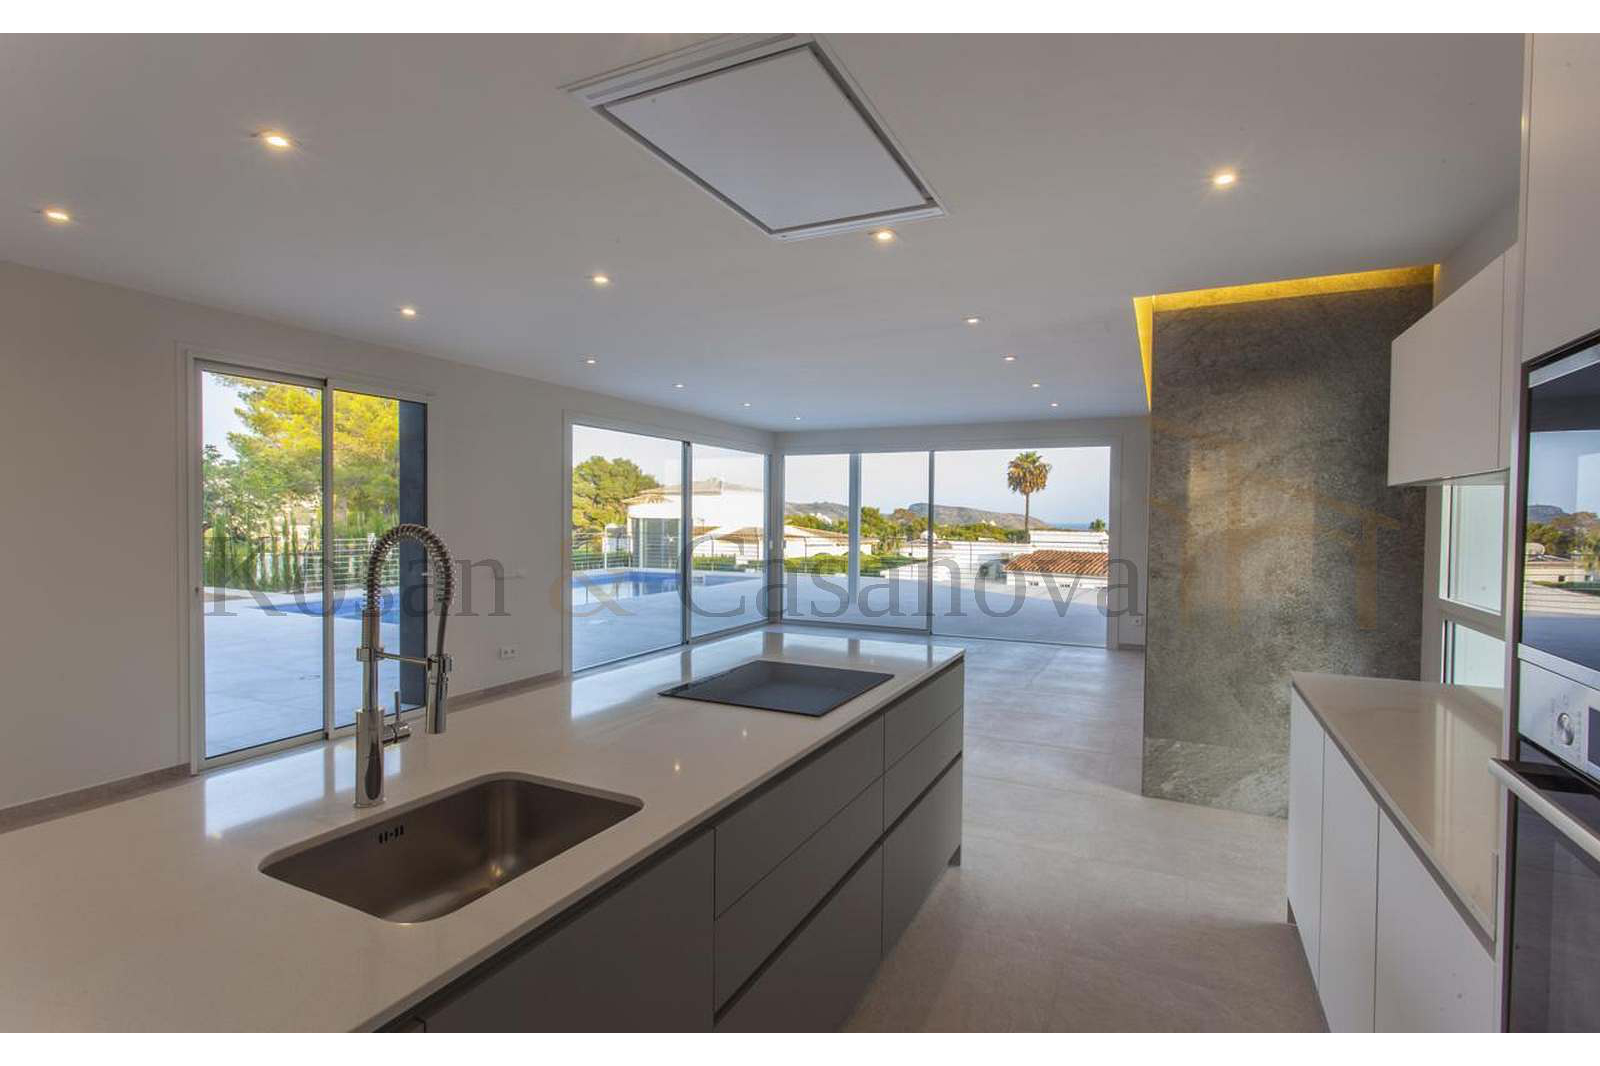 Moraira / Teulada- A contemporary Villa, bright and airy, with openspaces, ideal for modern living pic 11